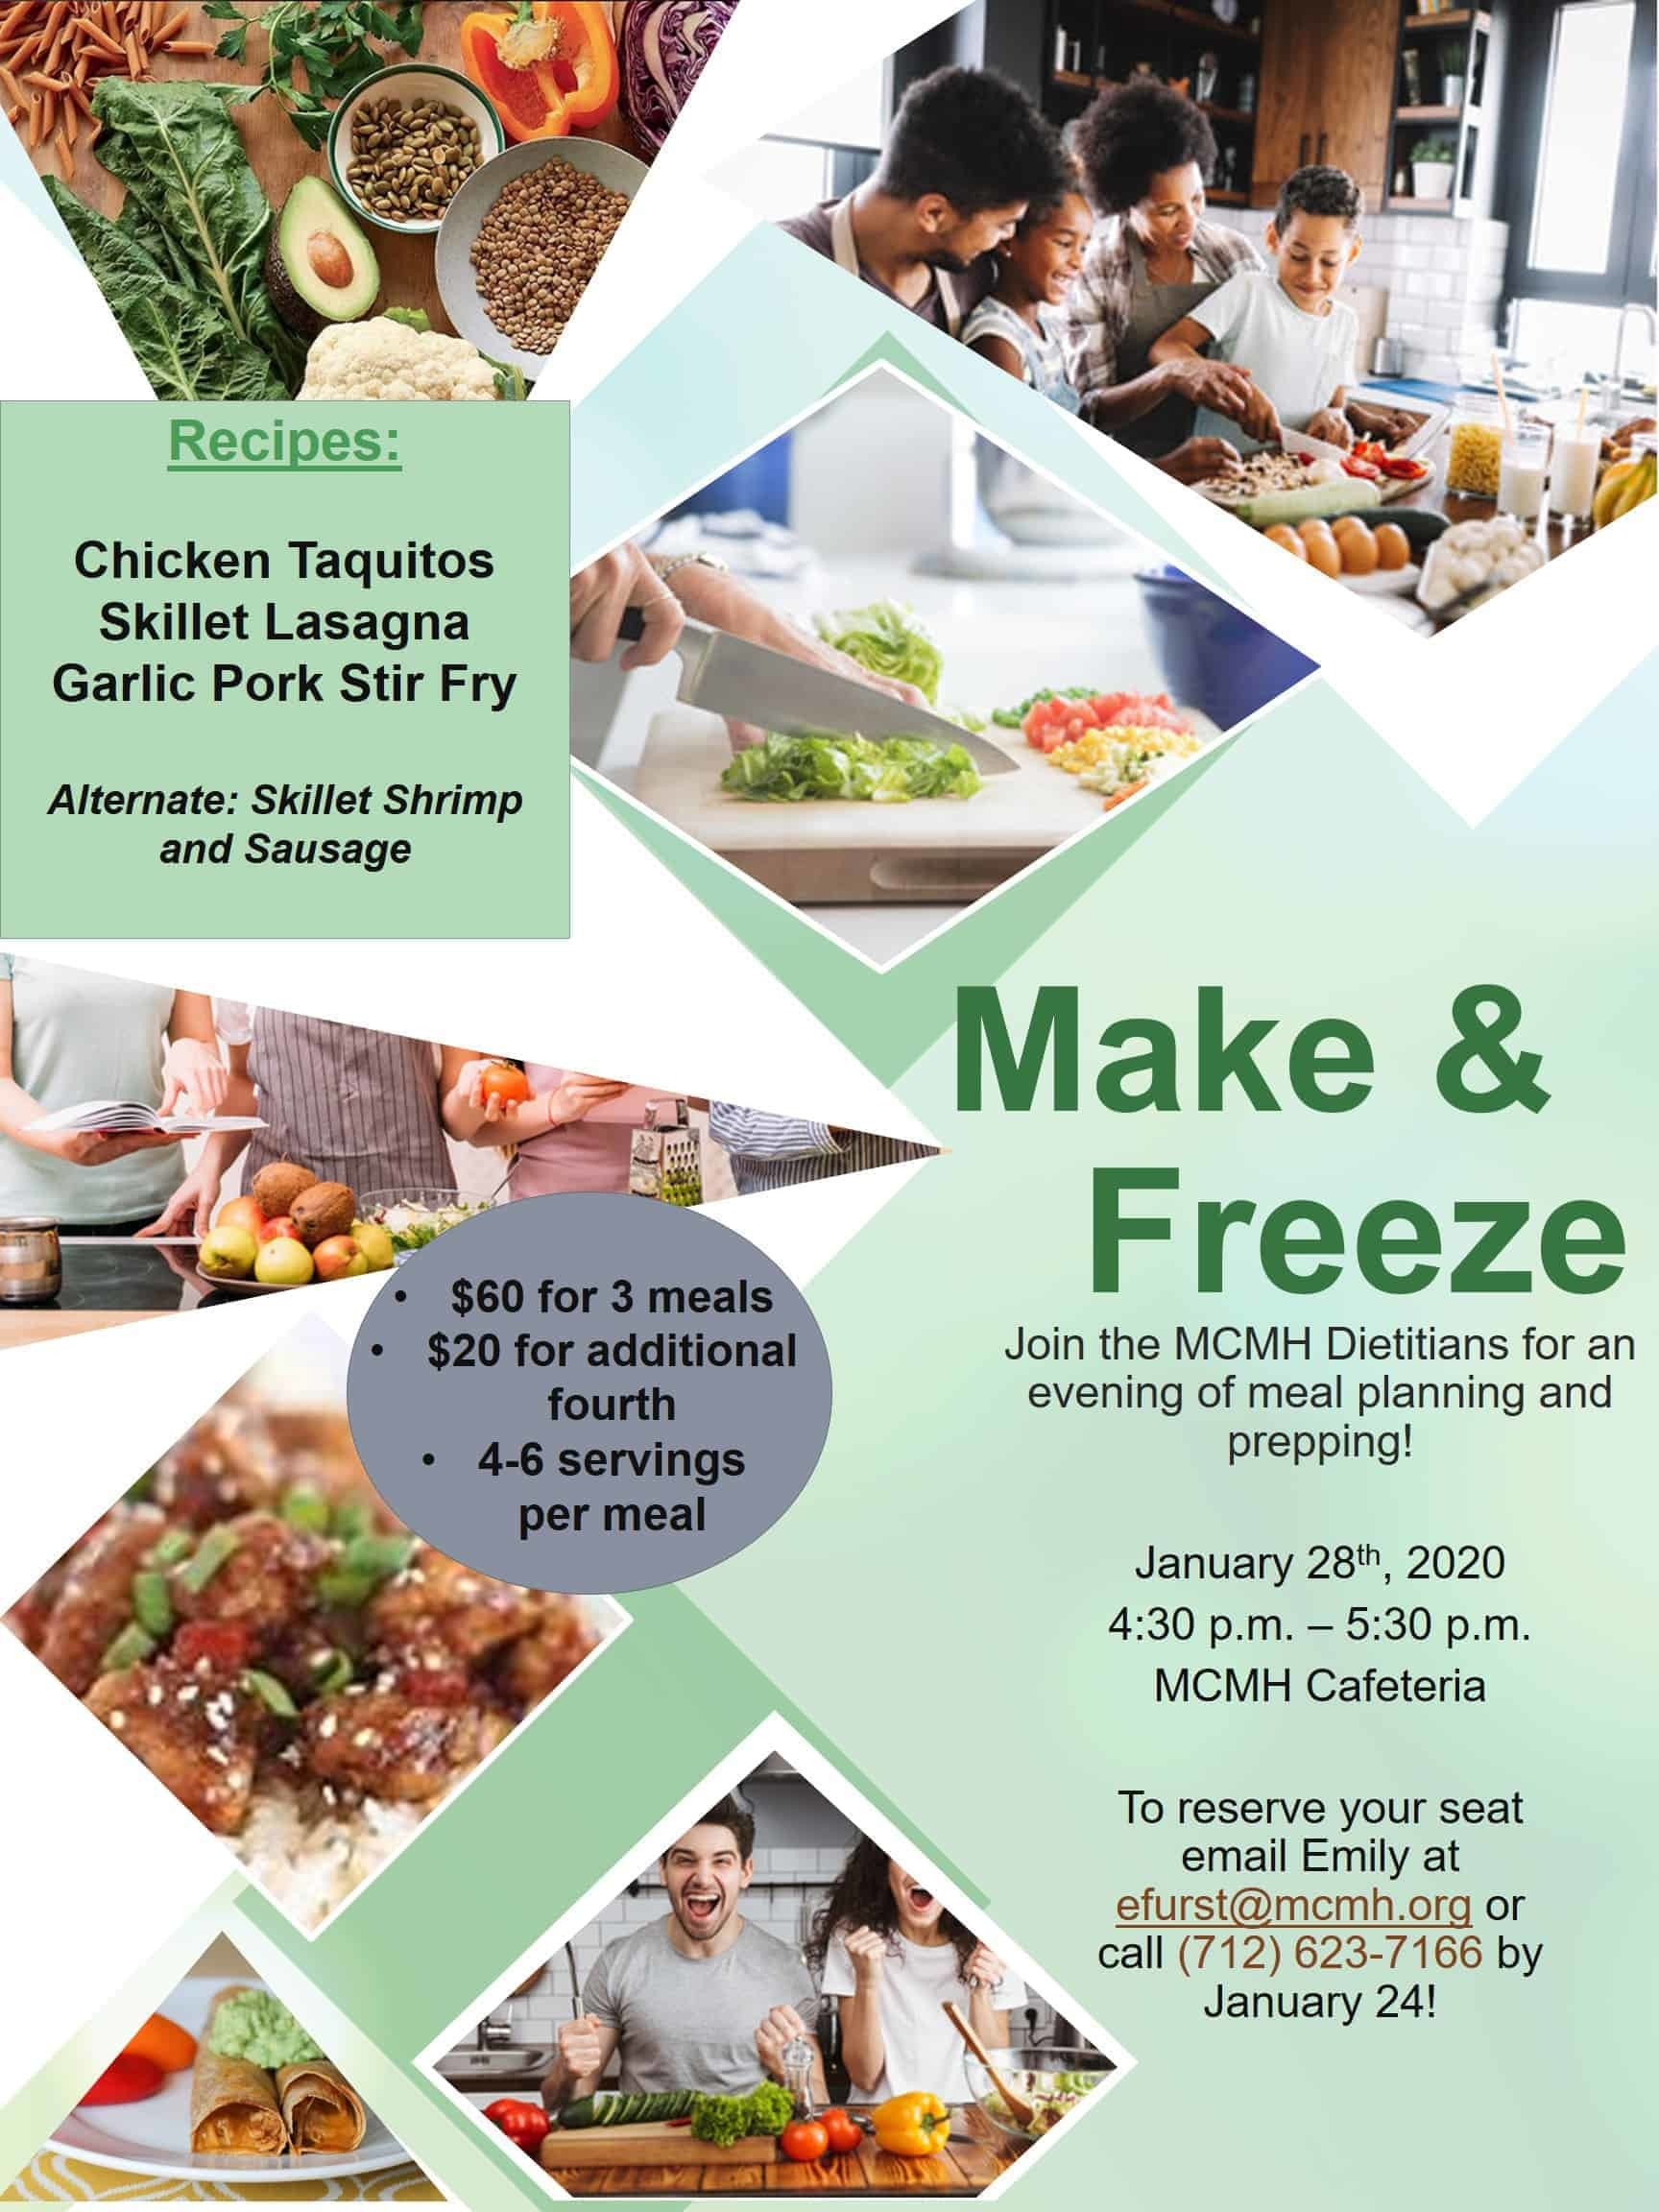 Make & Freeze Meal Planning